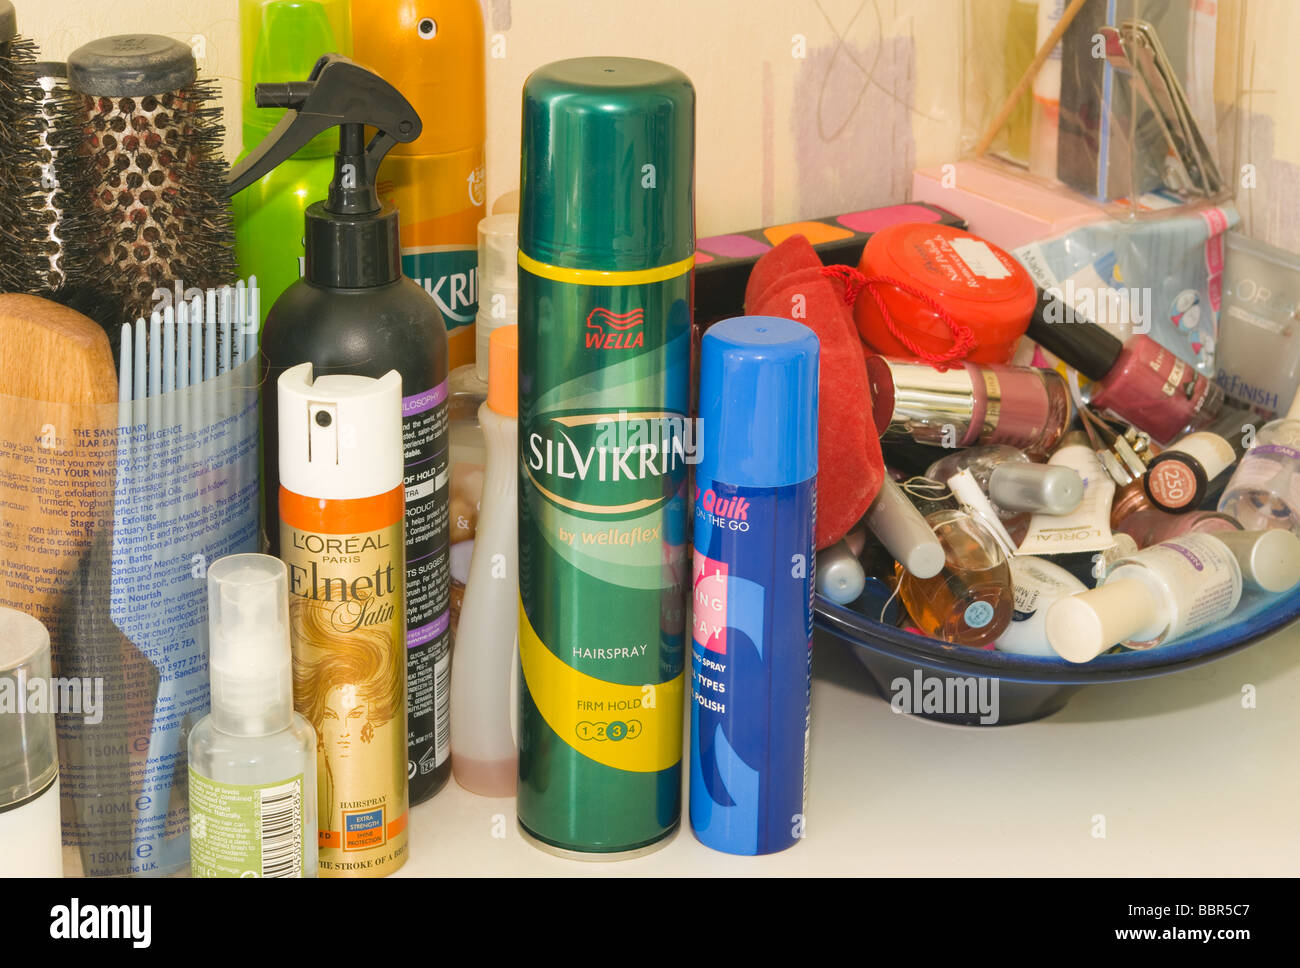 Brushes Hair Care Products and Make Up On a Ladies Dressing Table - Stock Image